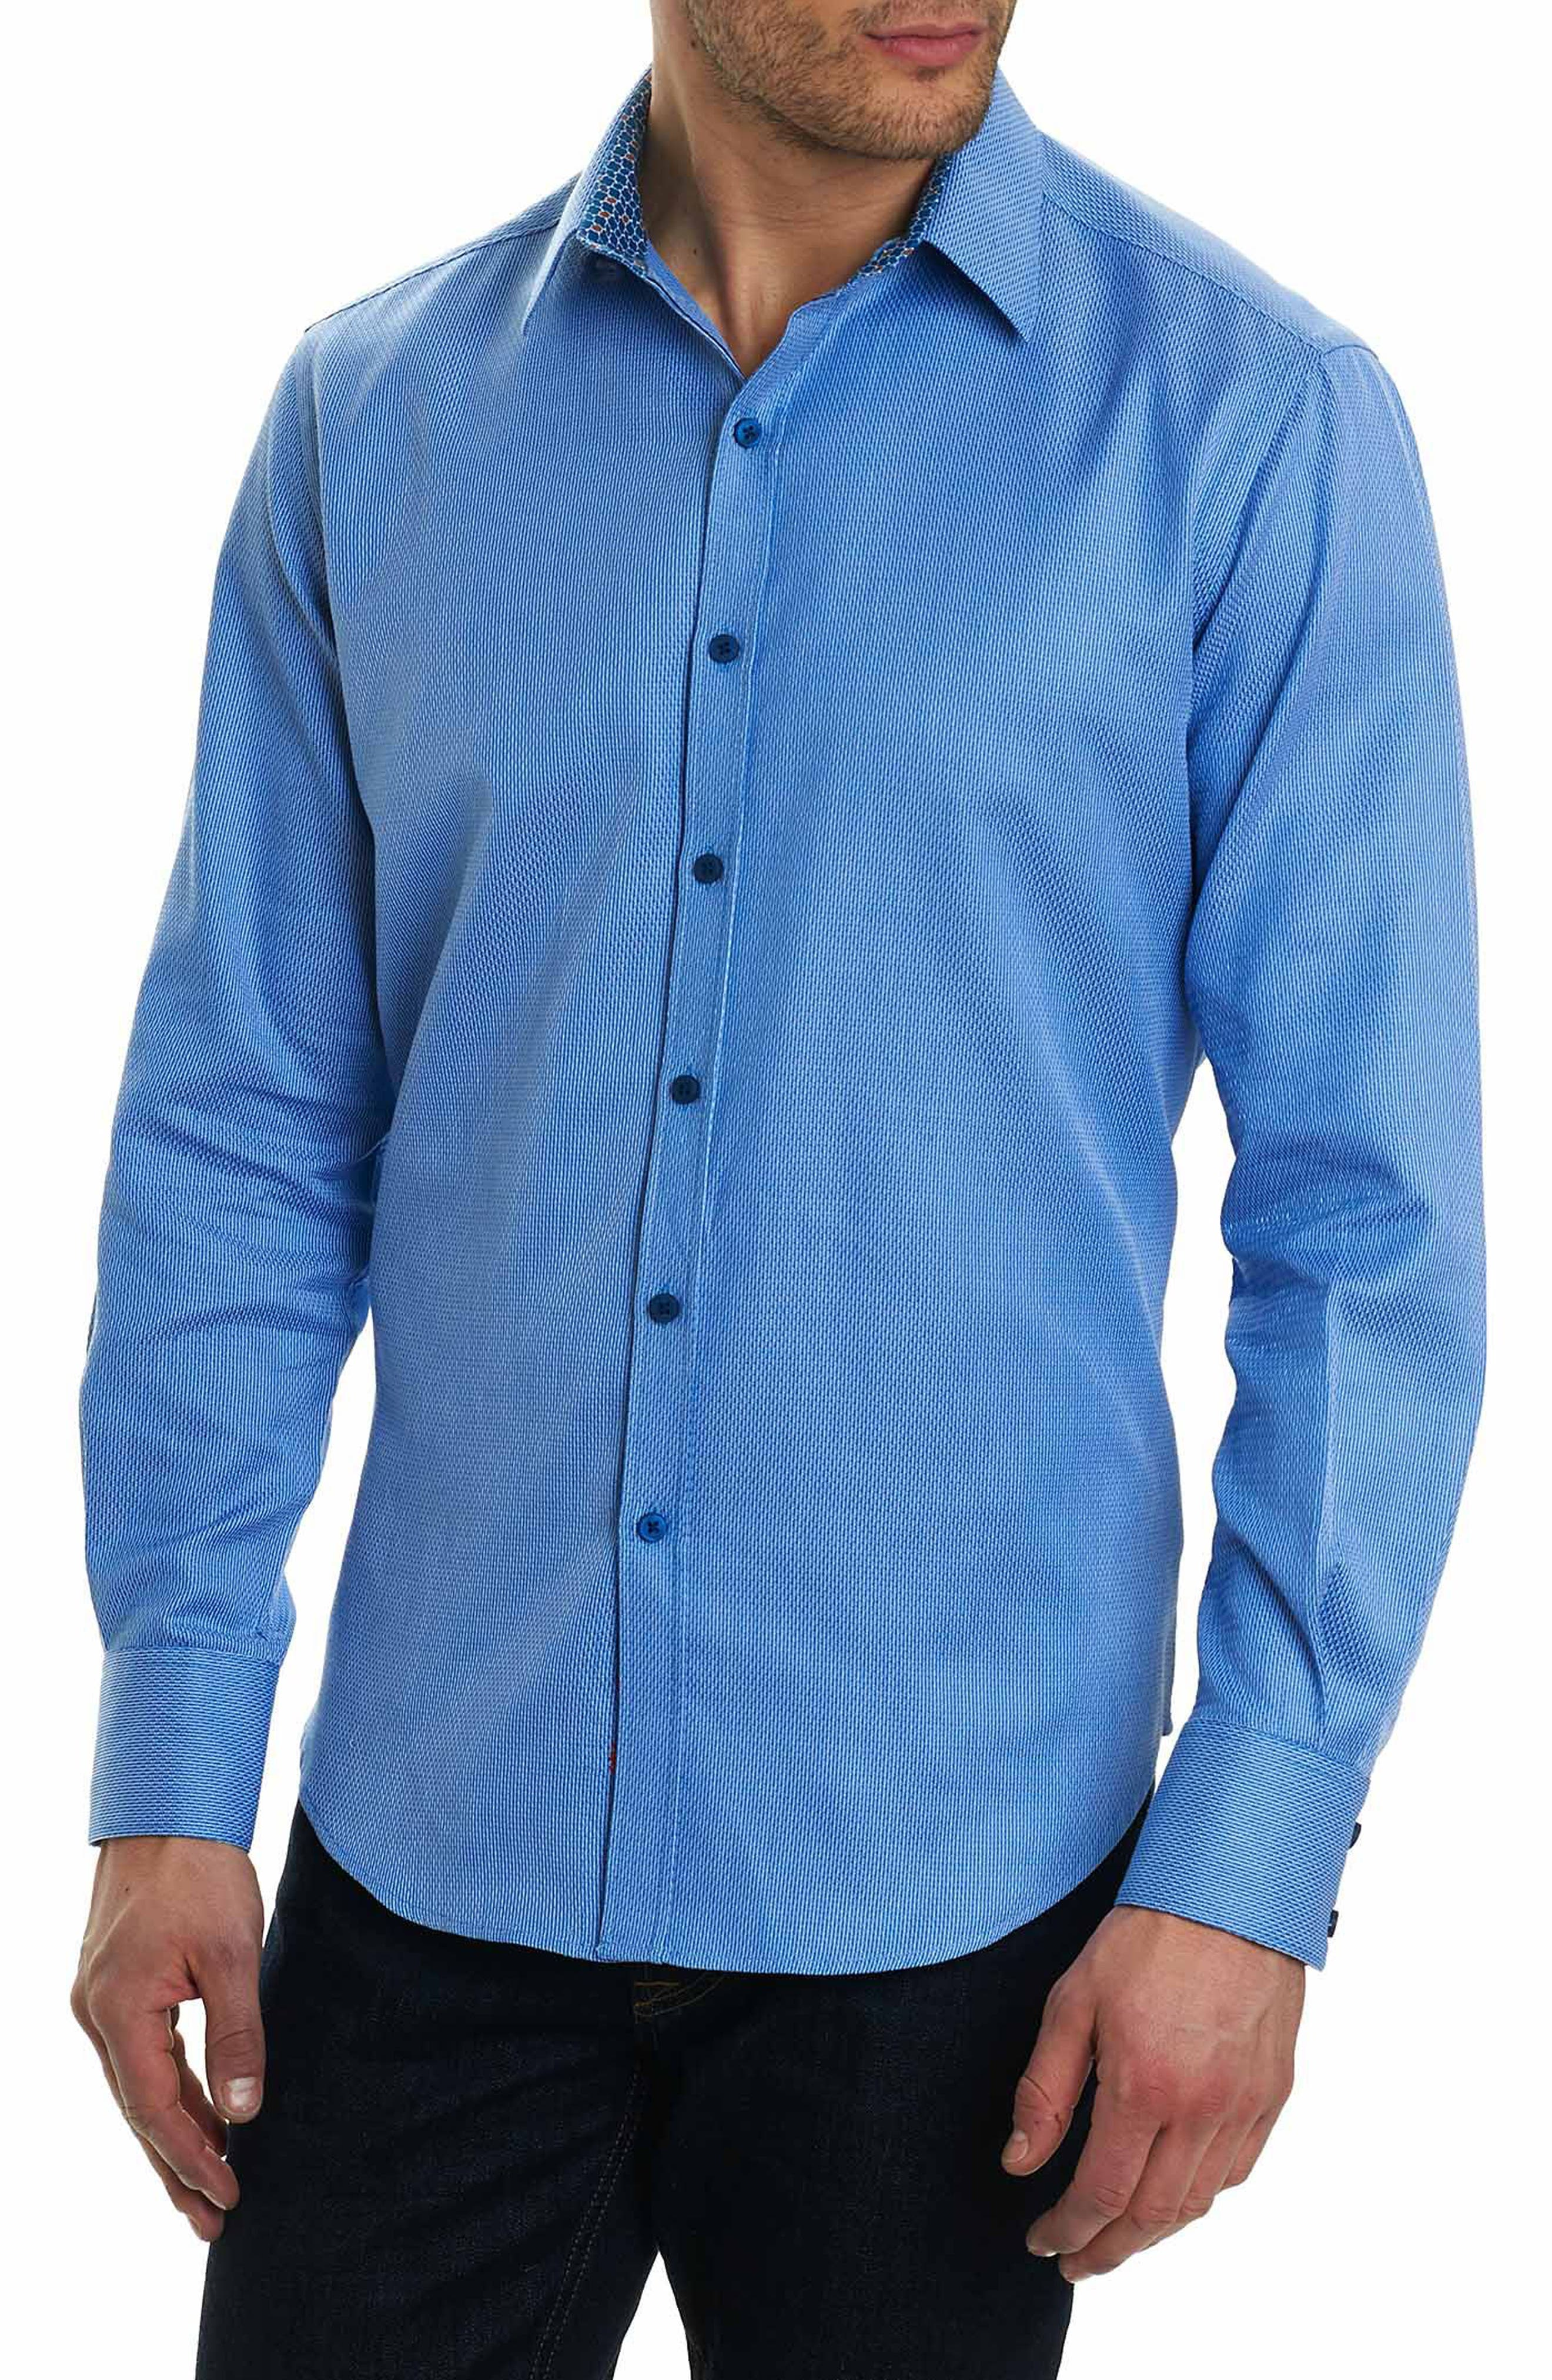 Alternate Image 1 Selected - Robert Graham Jobson Classic Fit Sport Shirt